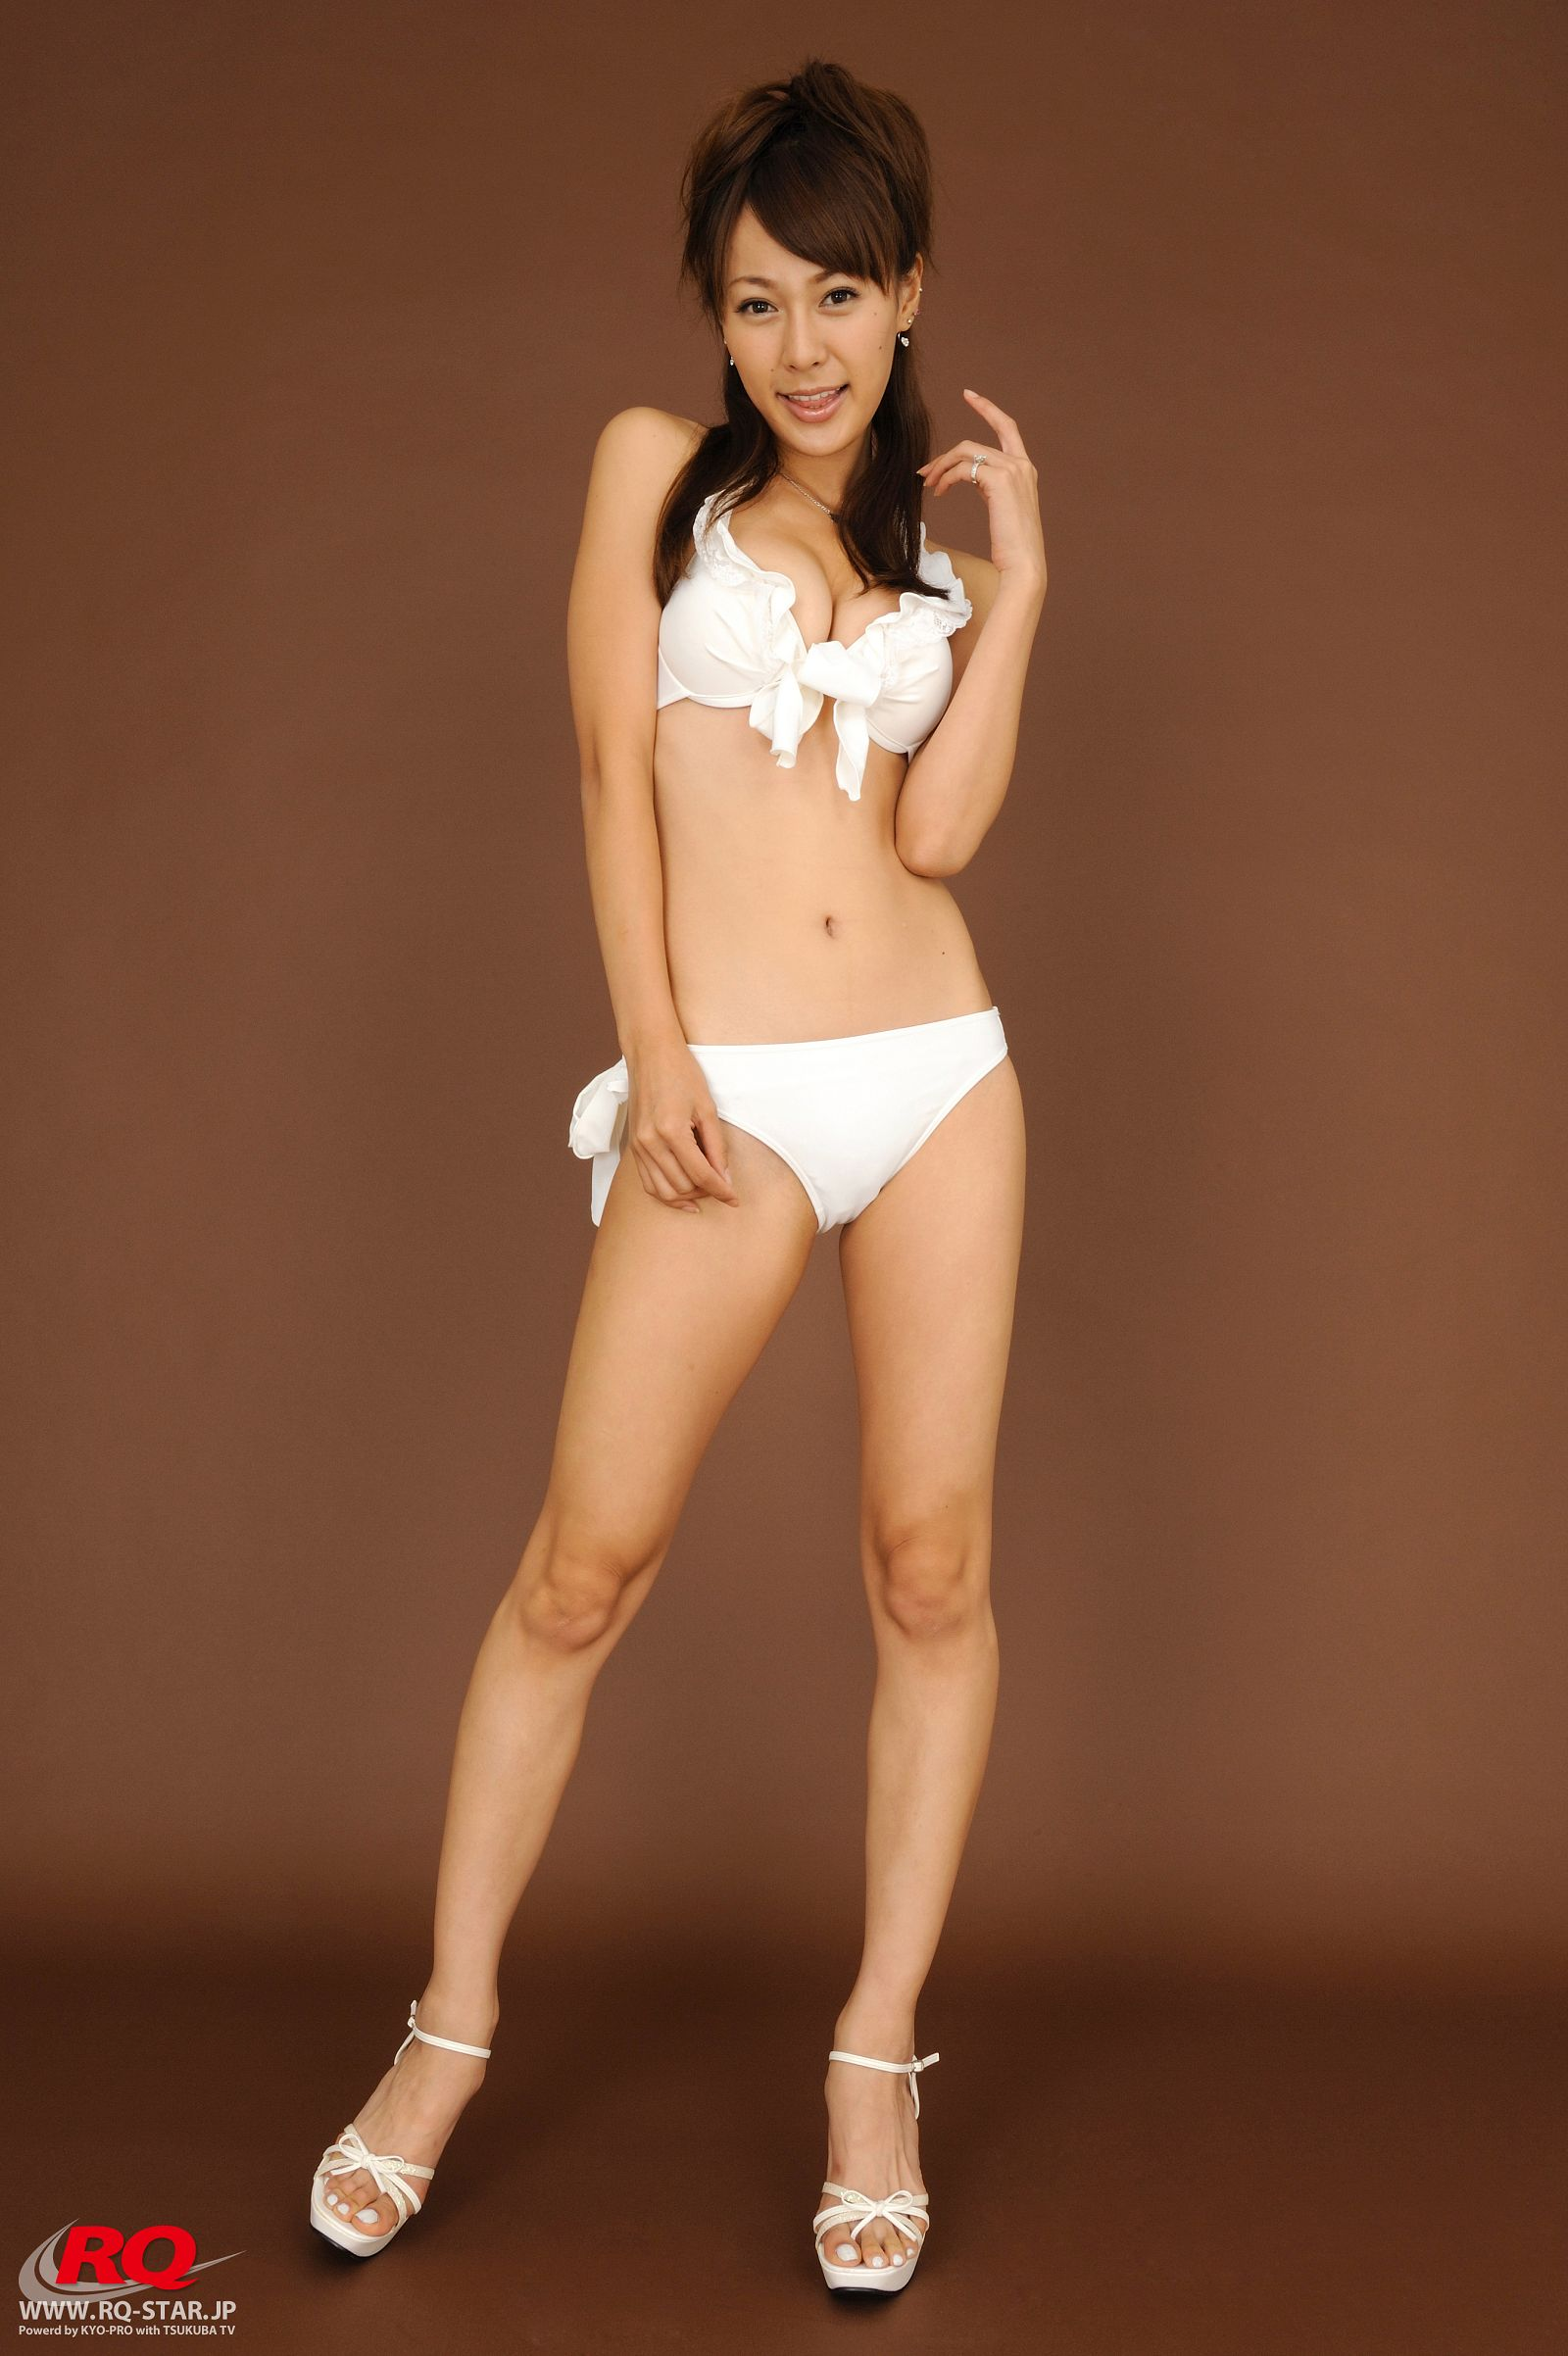 [RQ STAR美女] NO.0066 Tomoe Nakagawa 中川知映 Swim Suits White[108P] RQ STAR 第1张